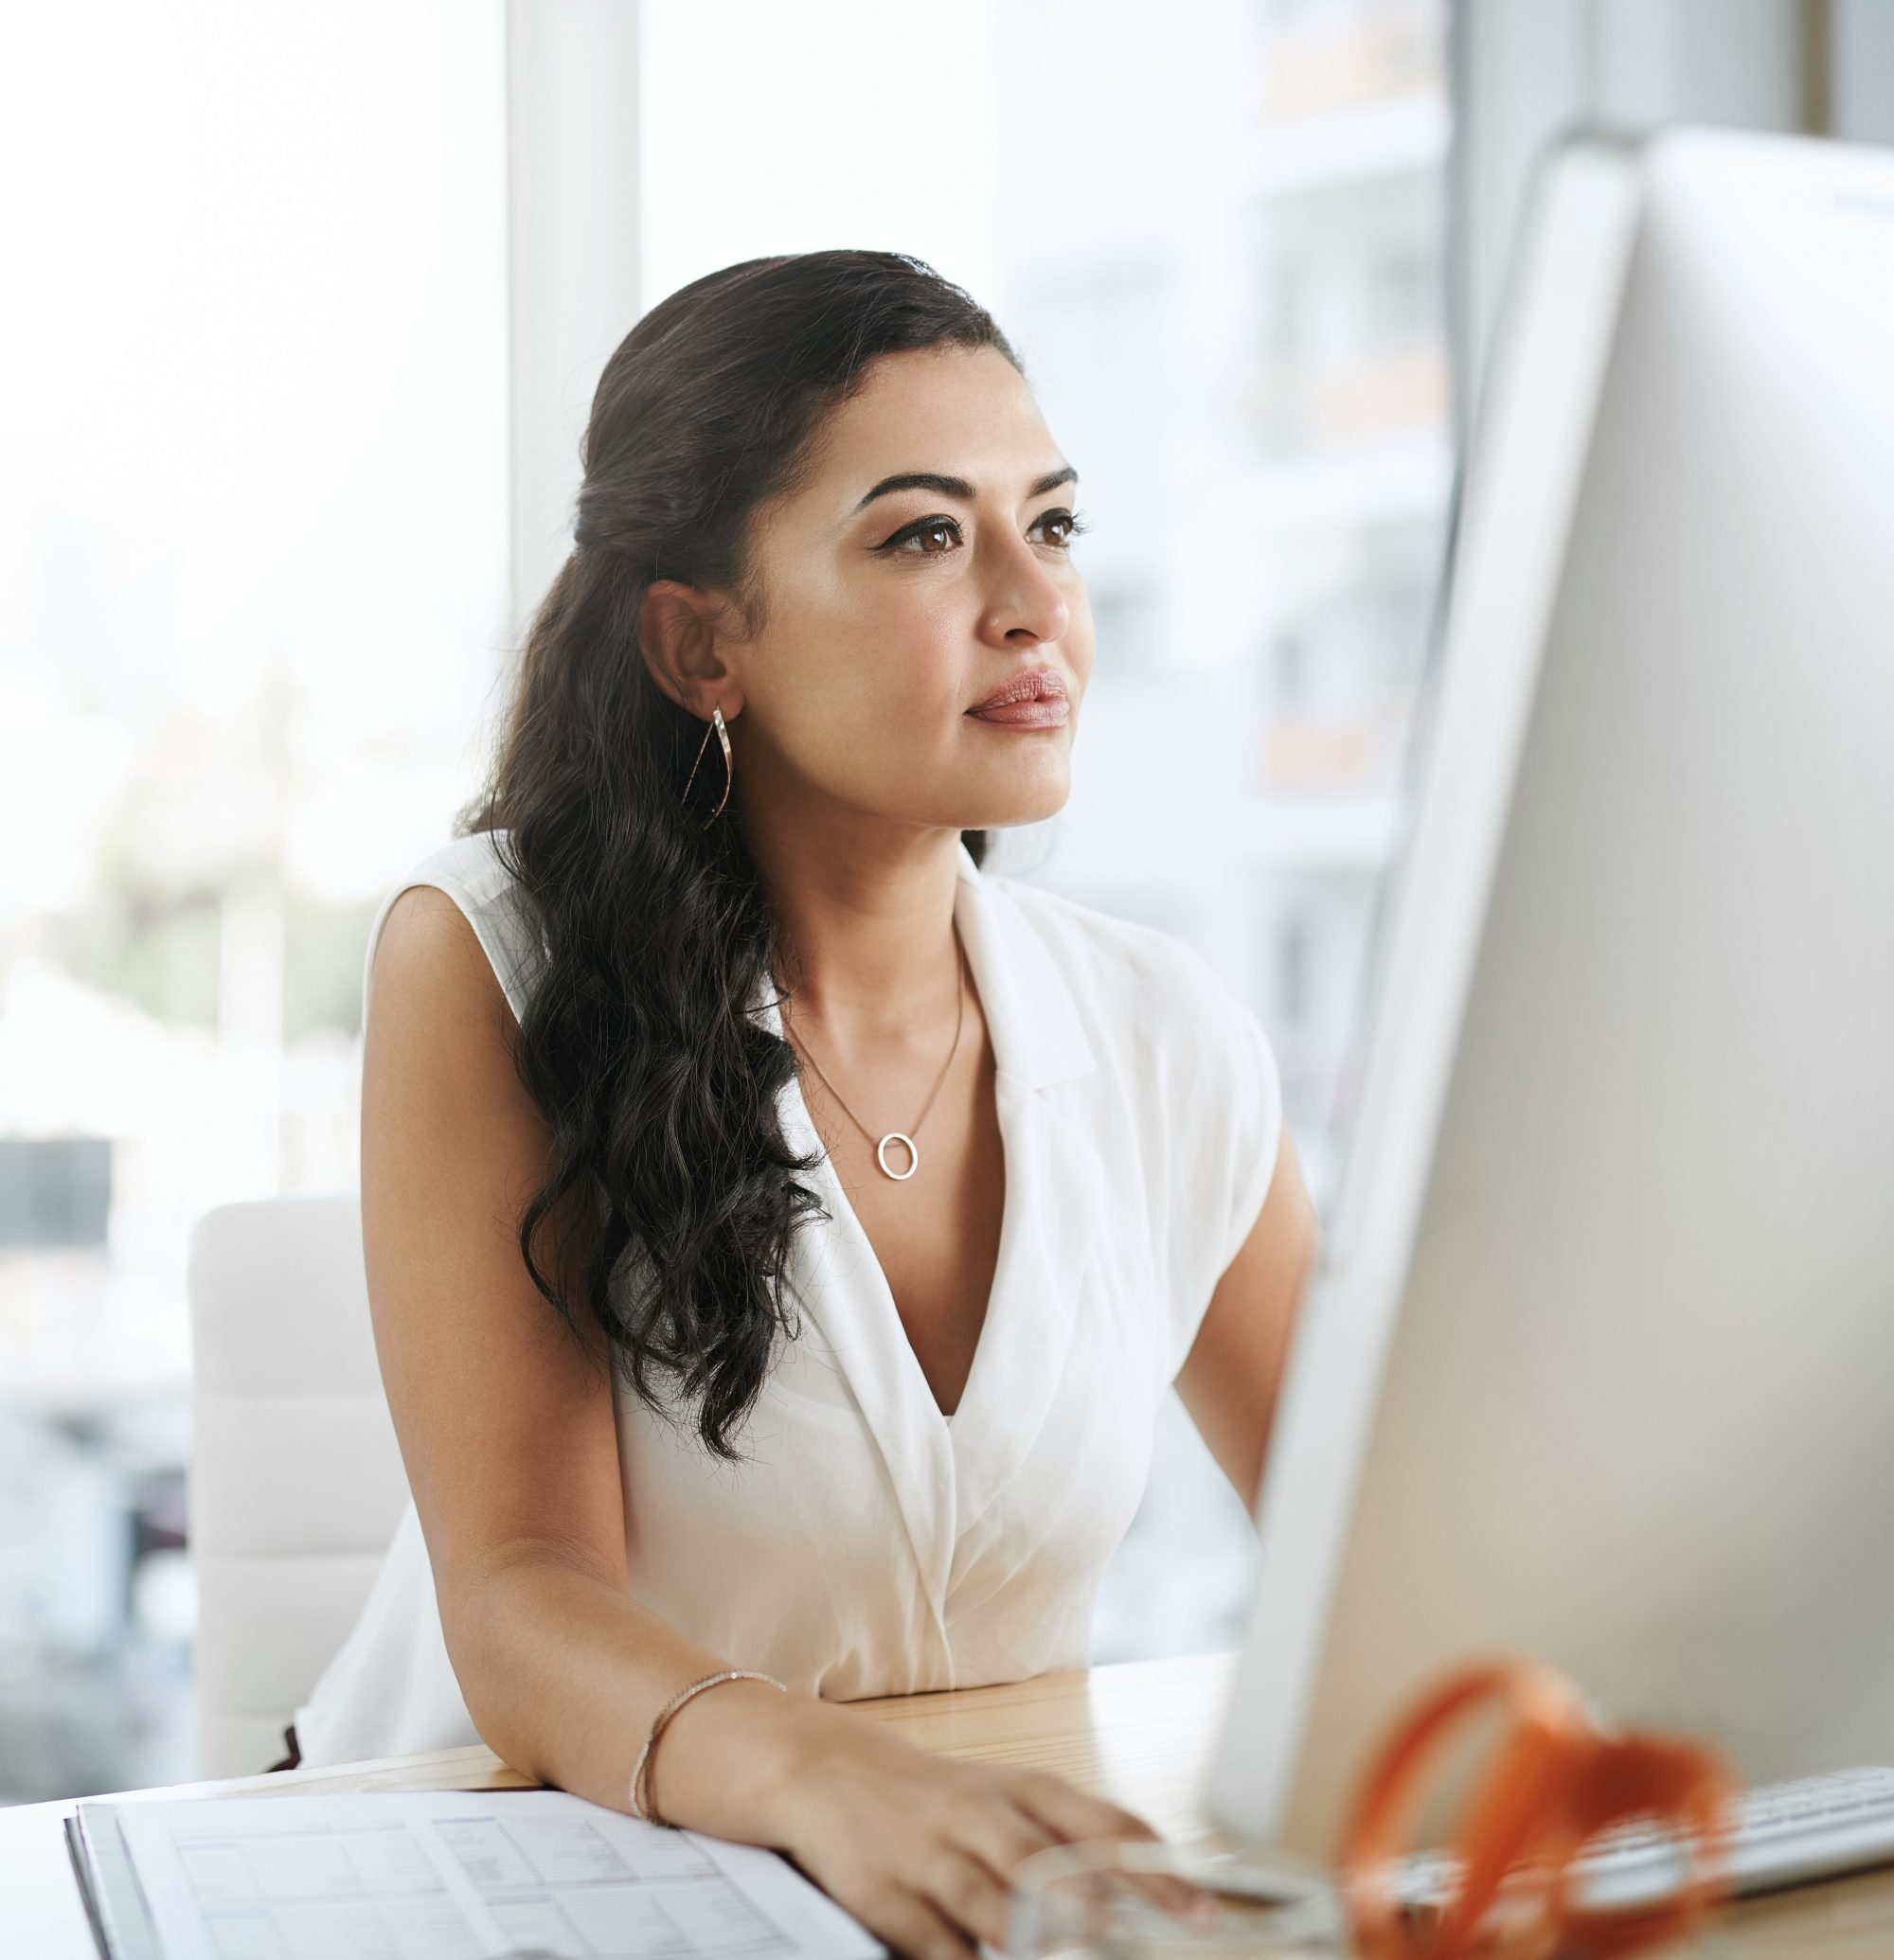 Shot of a young businesswoman using a computer at her desk in a modern office